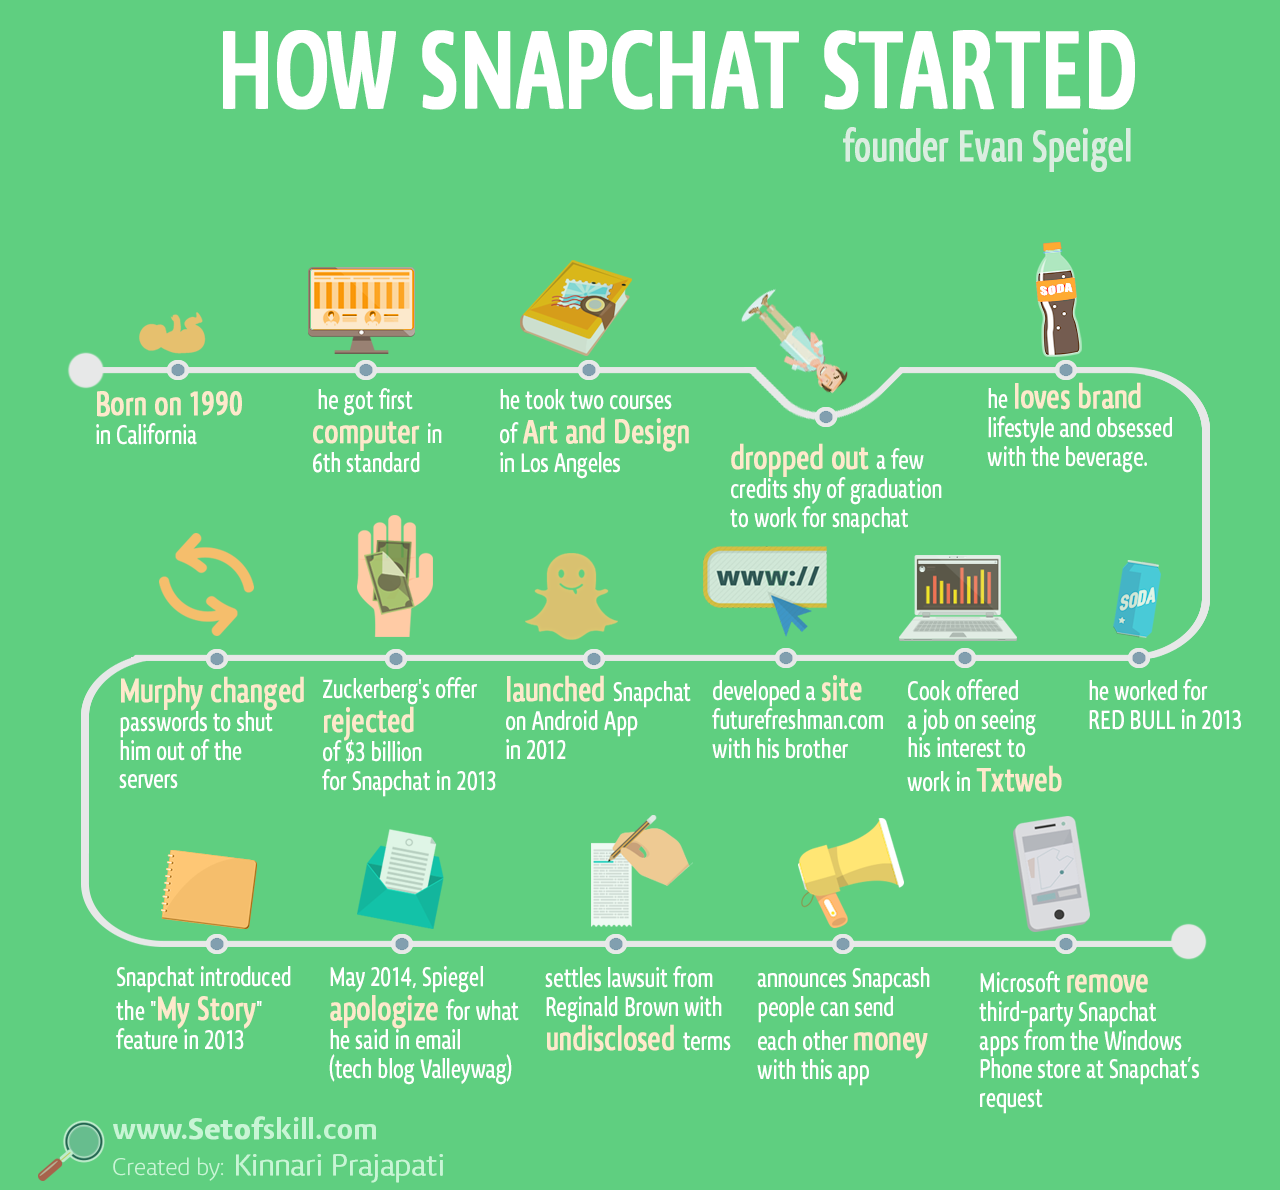 How Snapchat Started By Evan Speigel Visualized Startup Story How Snapchat Started By Evan Speigel Startup Stories Business Infographic Ecommerce Startup